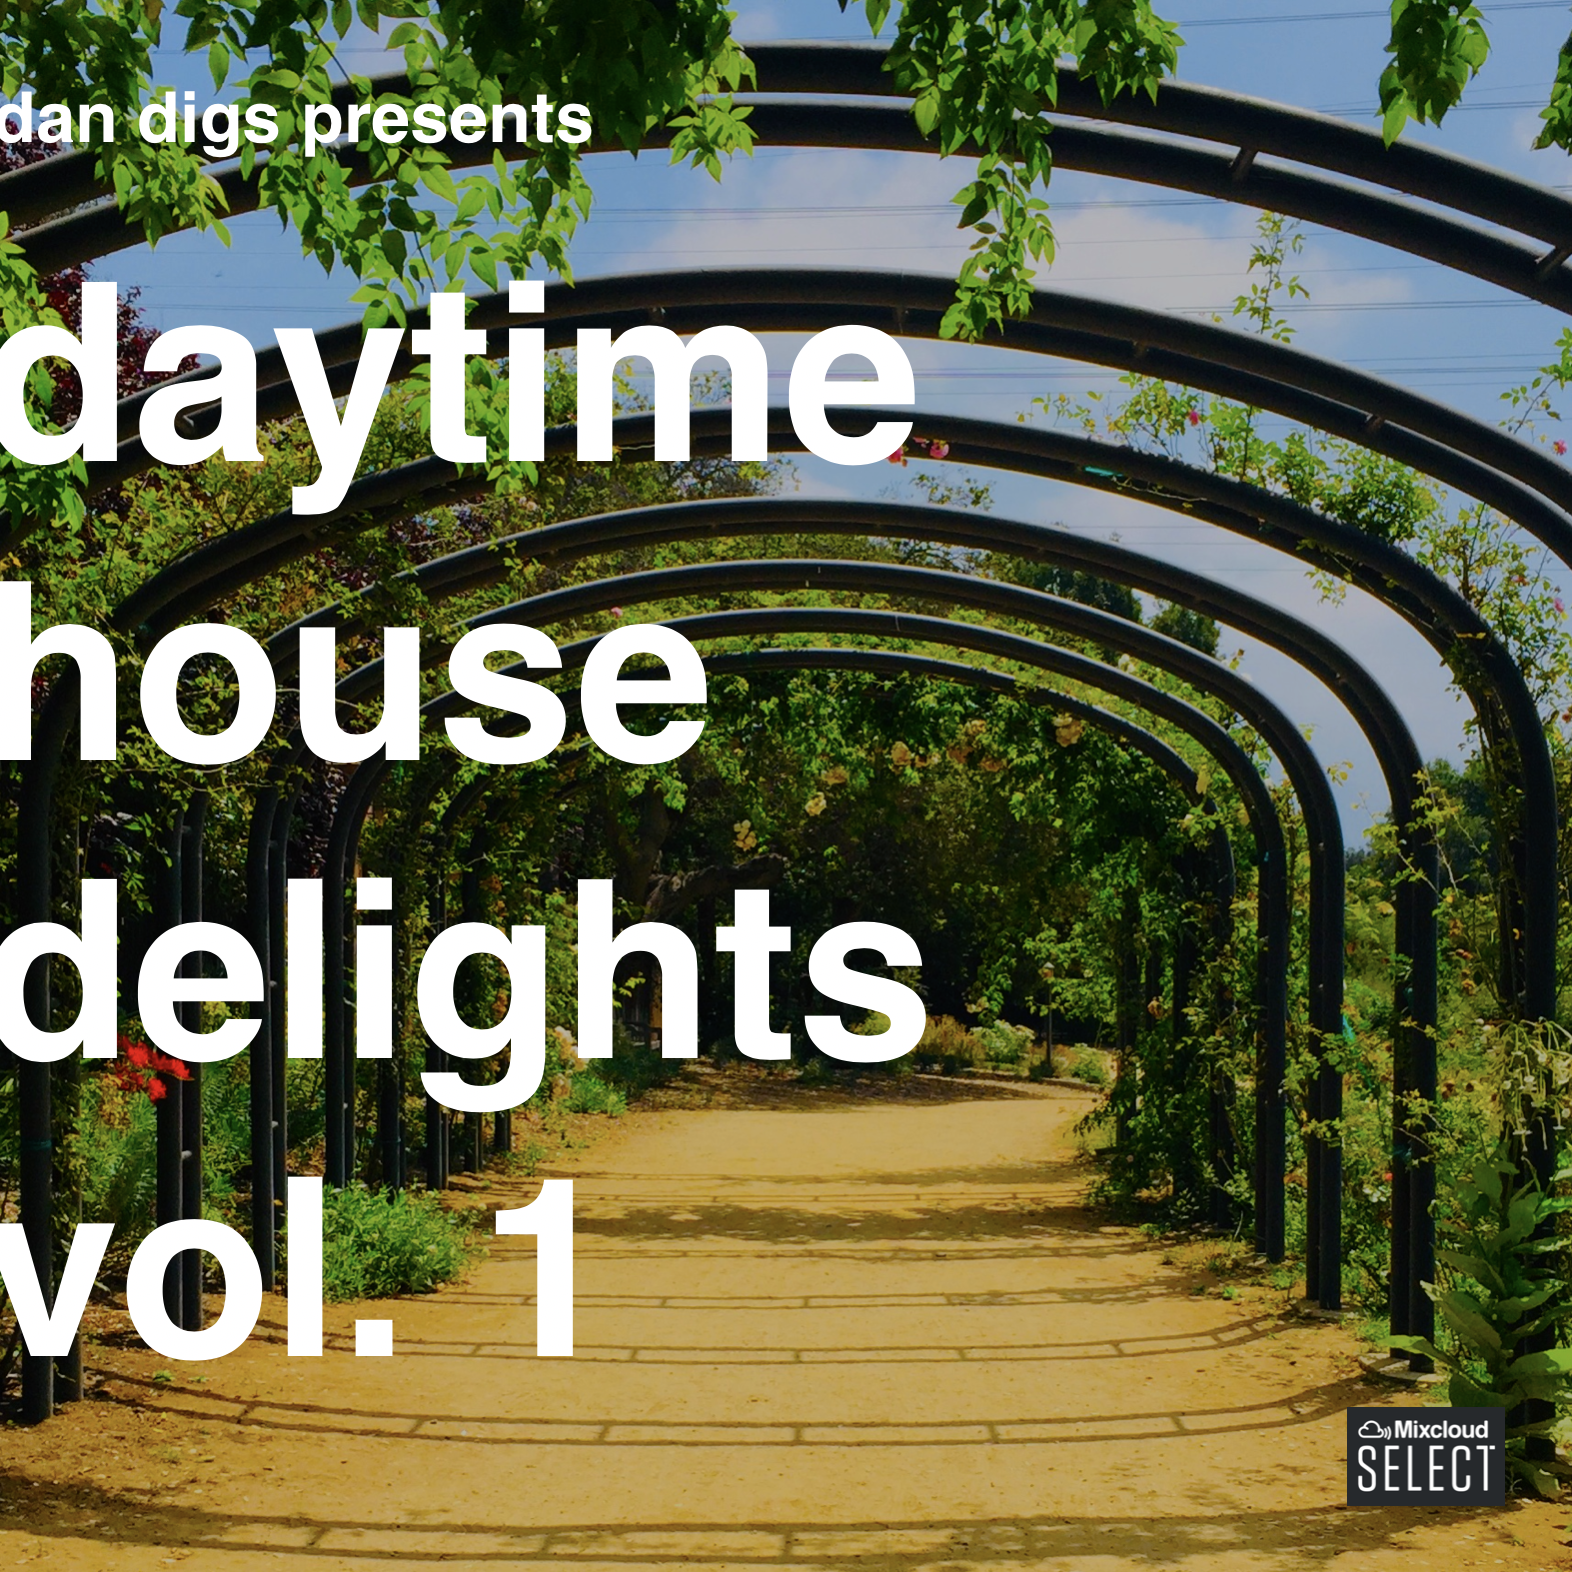 Dan Digs Mixcloud Select Exclusive: Daytime House Delights